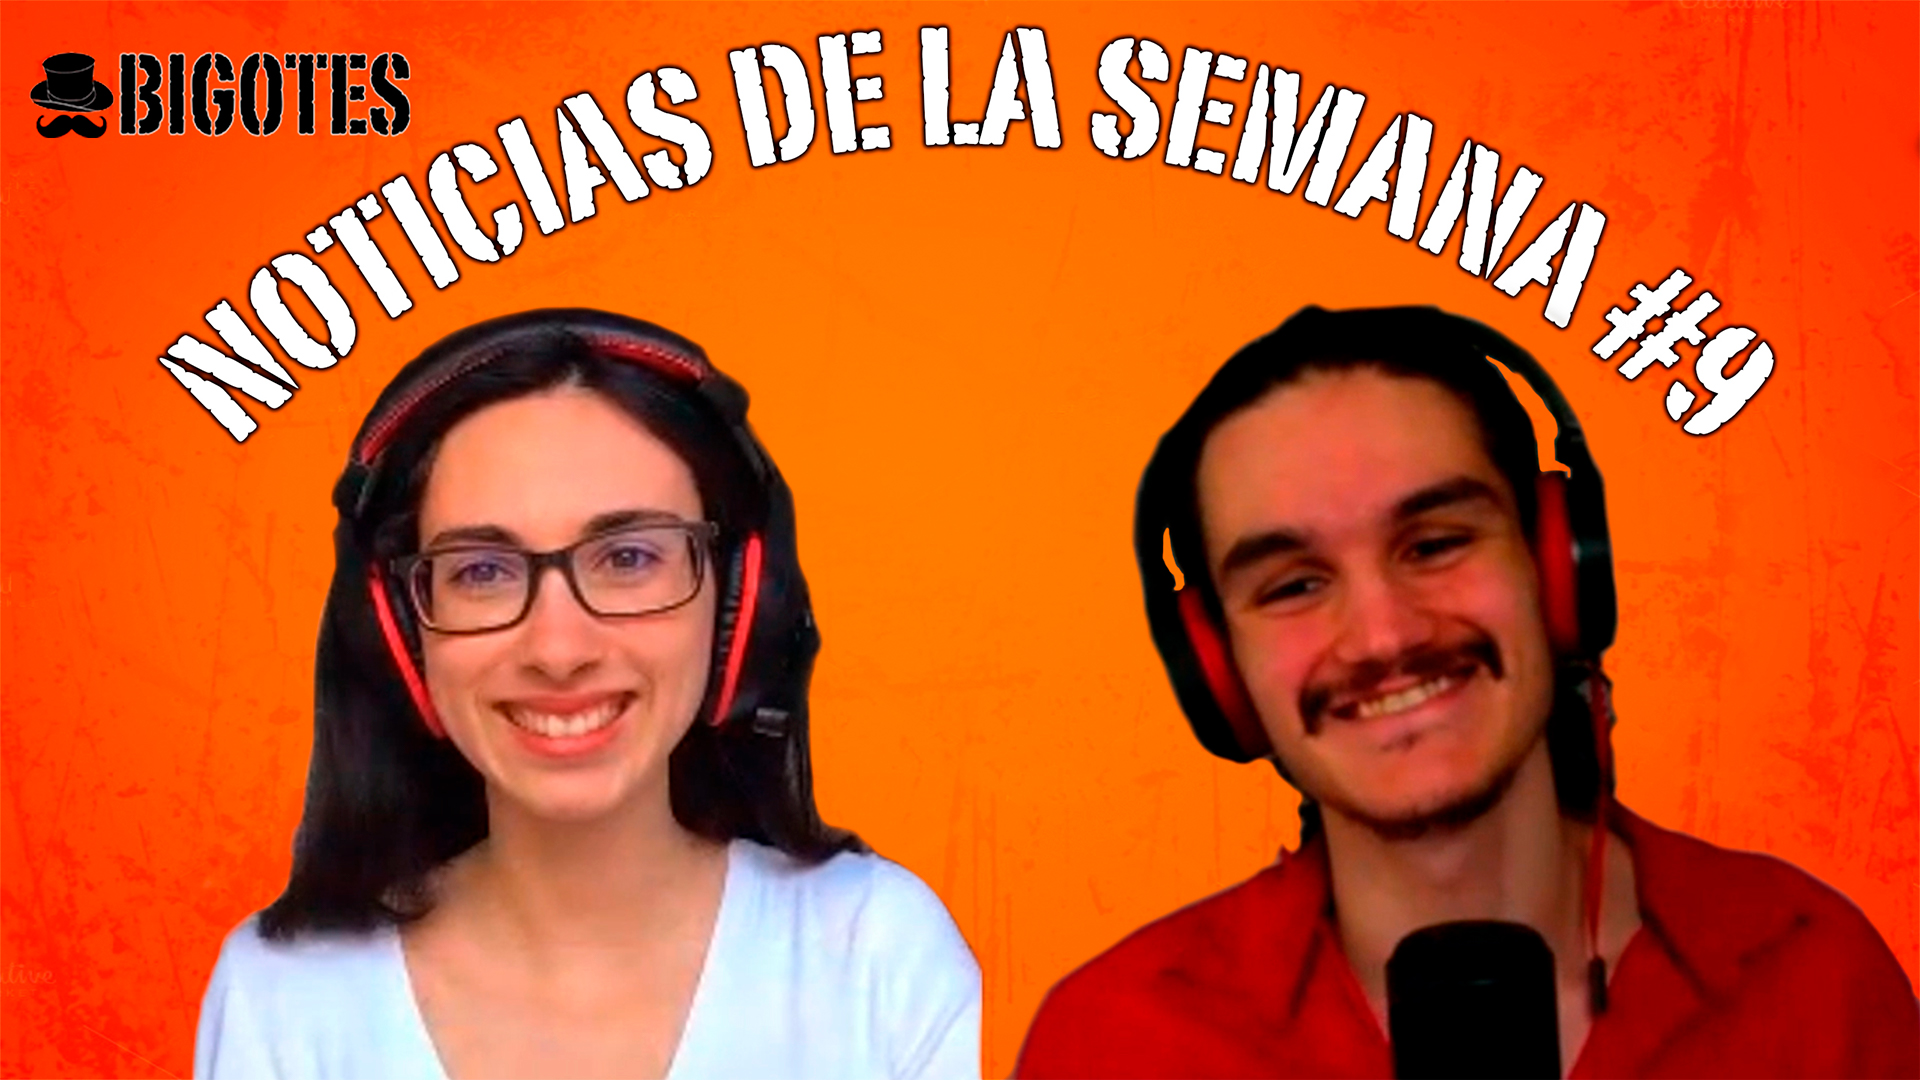 NOTICIAS DE LA SEMANA #9: Hackeo a Nintendo Network, Trials of Mana, Crysis Remastered, rebajas y más